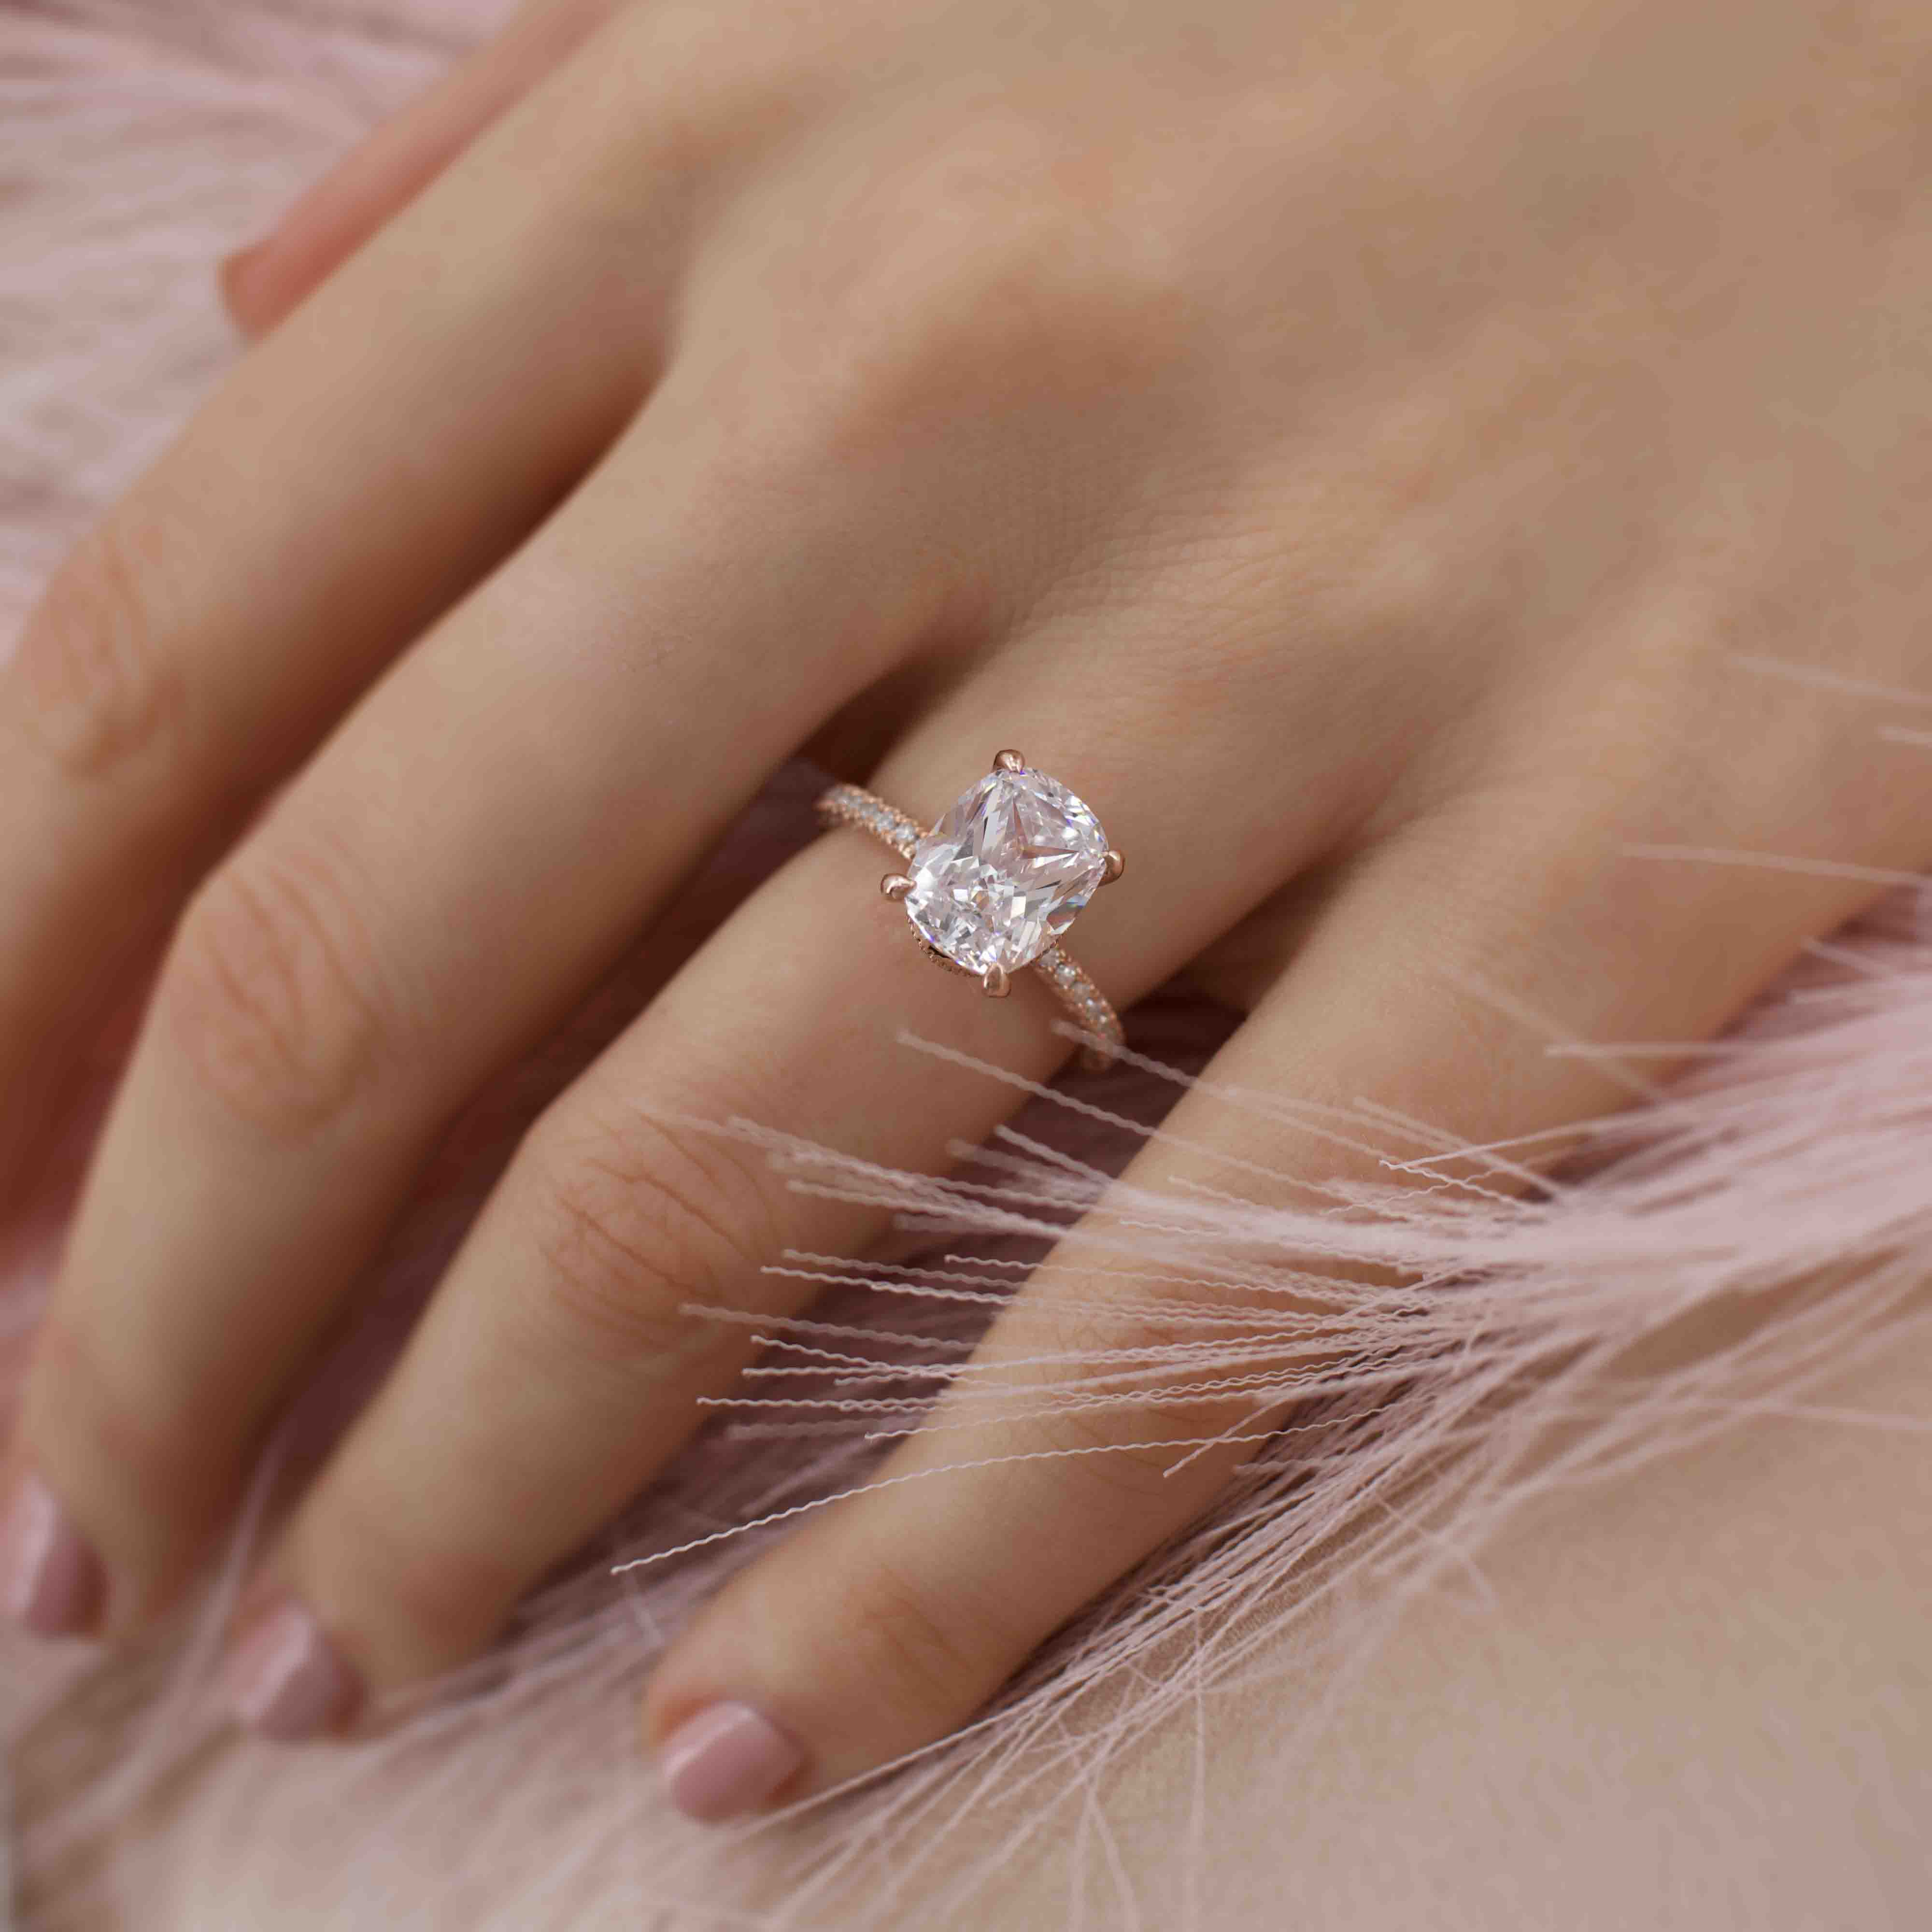 COCO - Elongated Cushion Cut Moissanite 18k White Gold Petite Hidden Halo Triple Pavé Engagement Ring Lily Arkwright